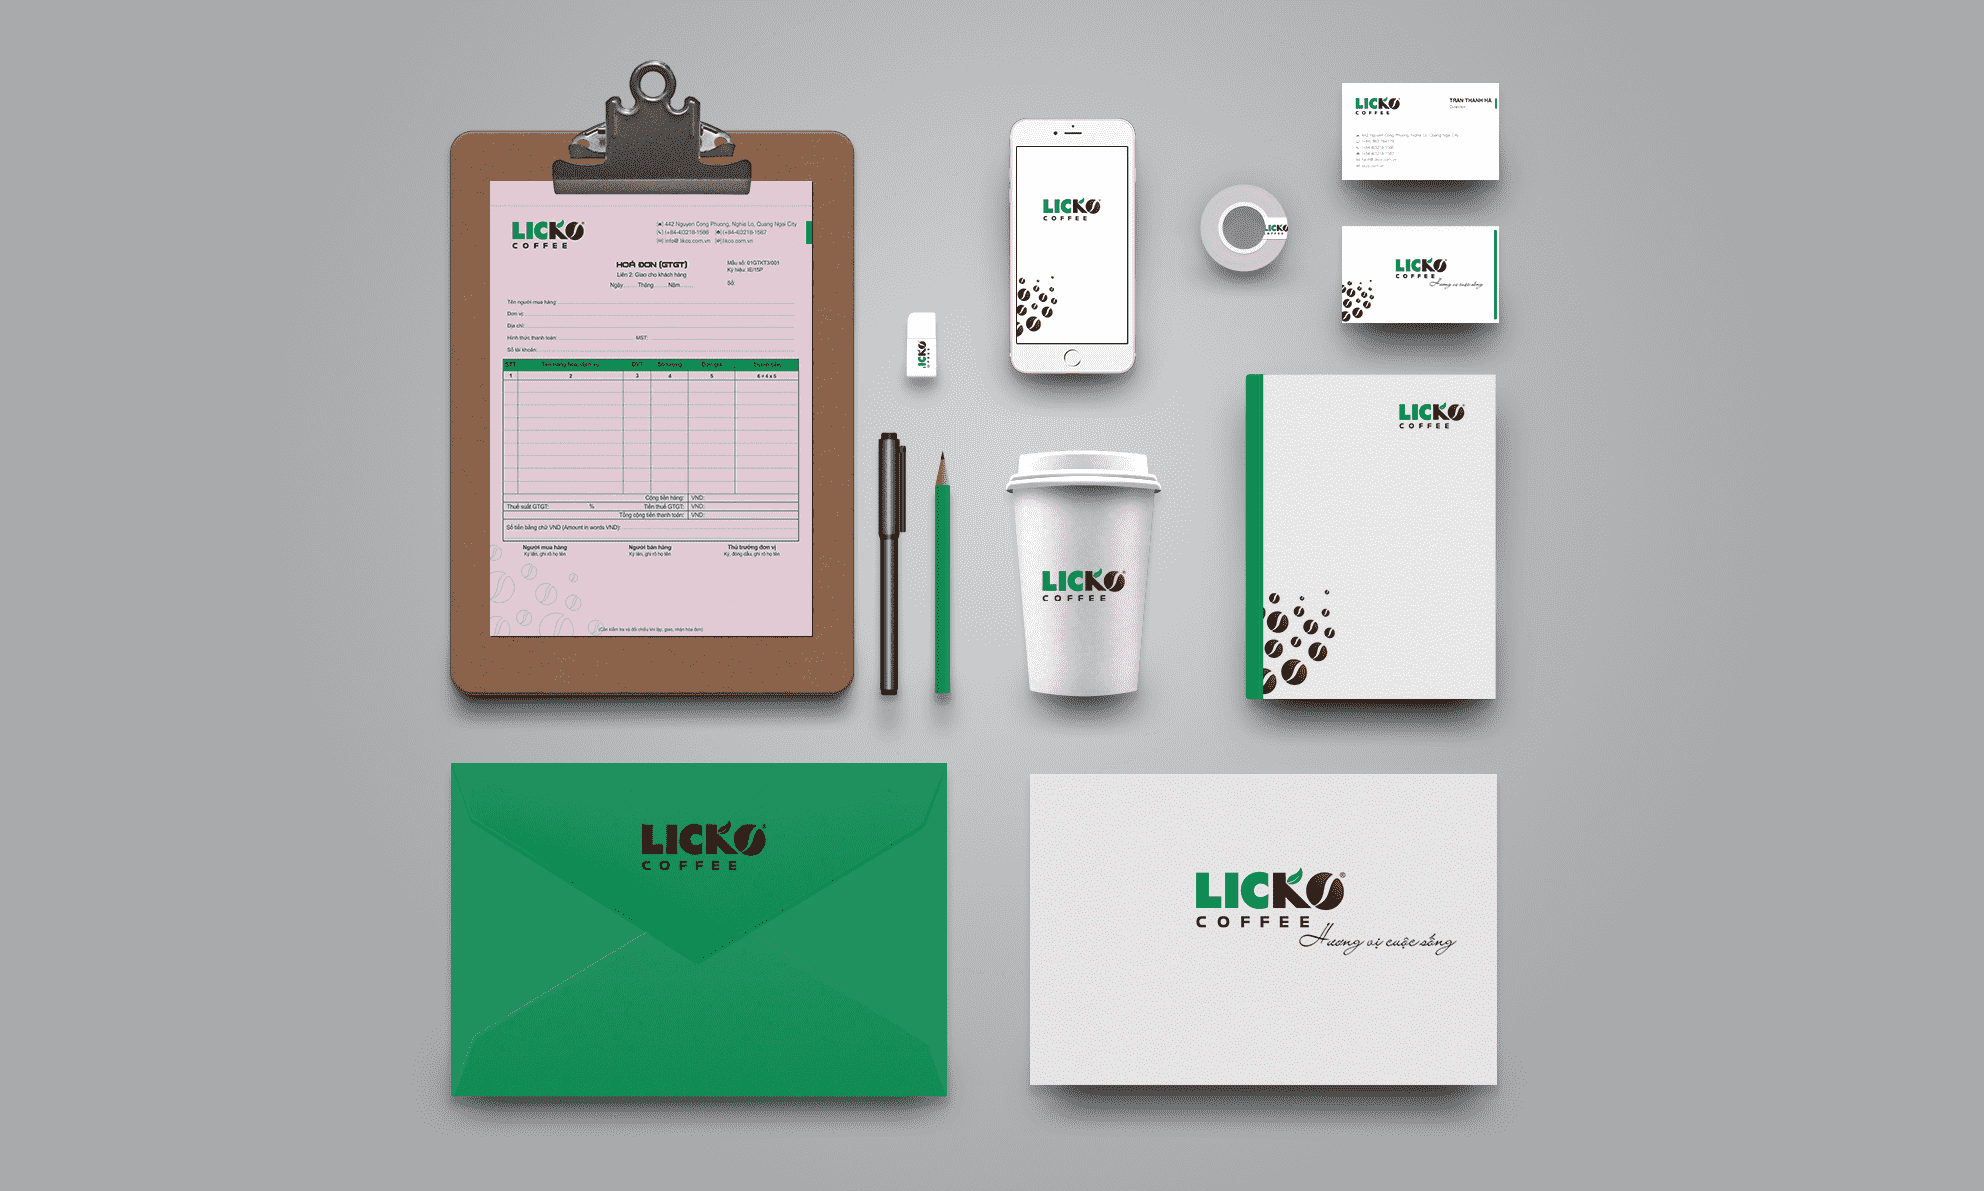 Licko-coffee_02_stationery.png